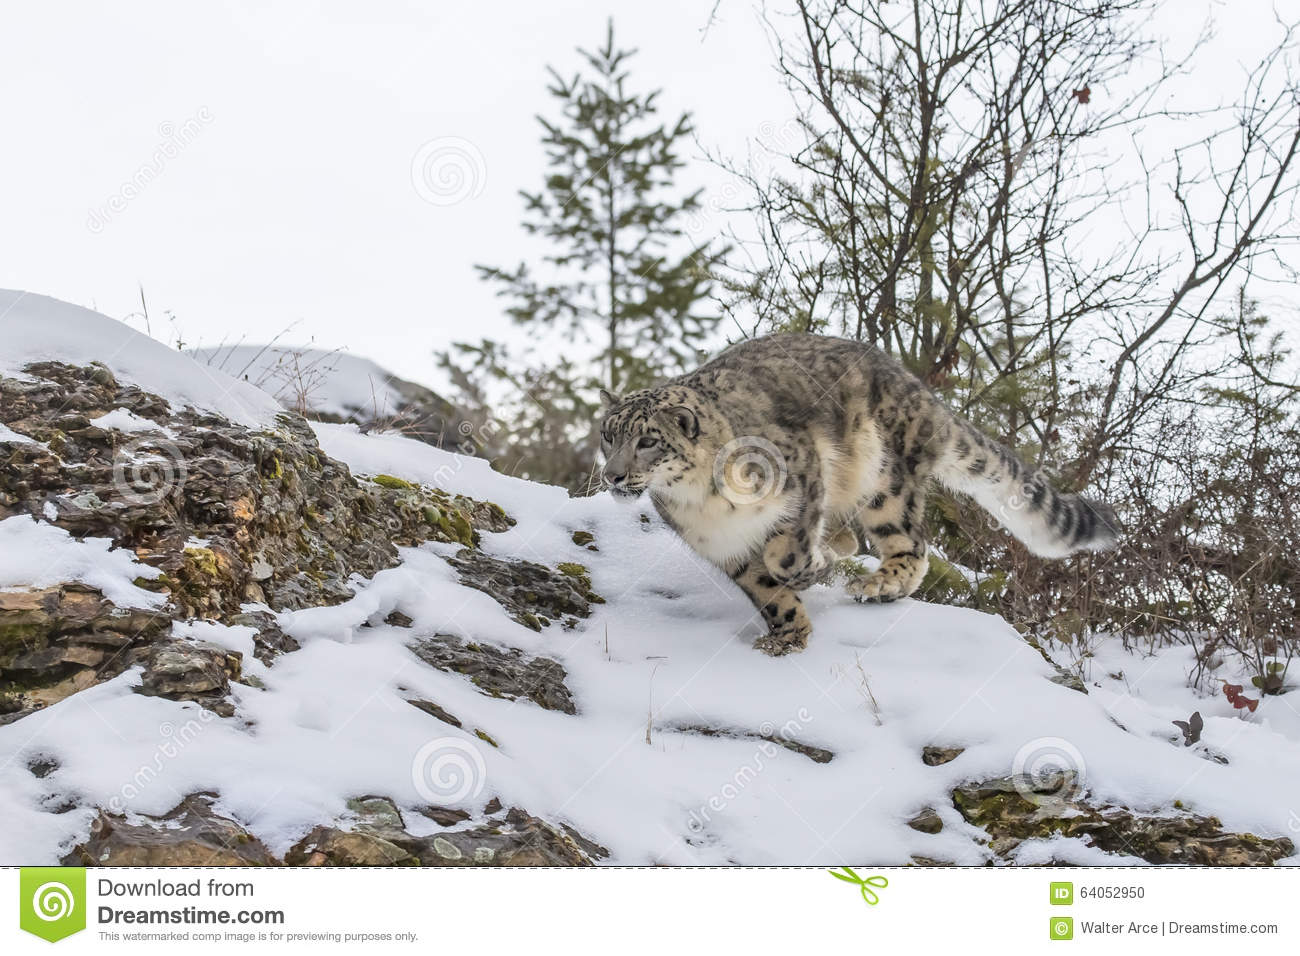 Snow leopard hunting prey - photo#8